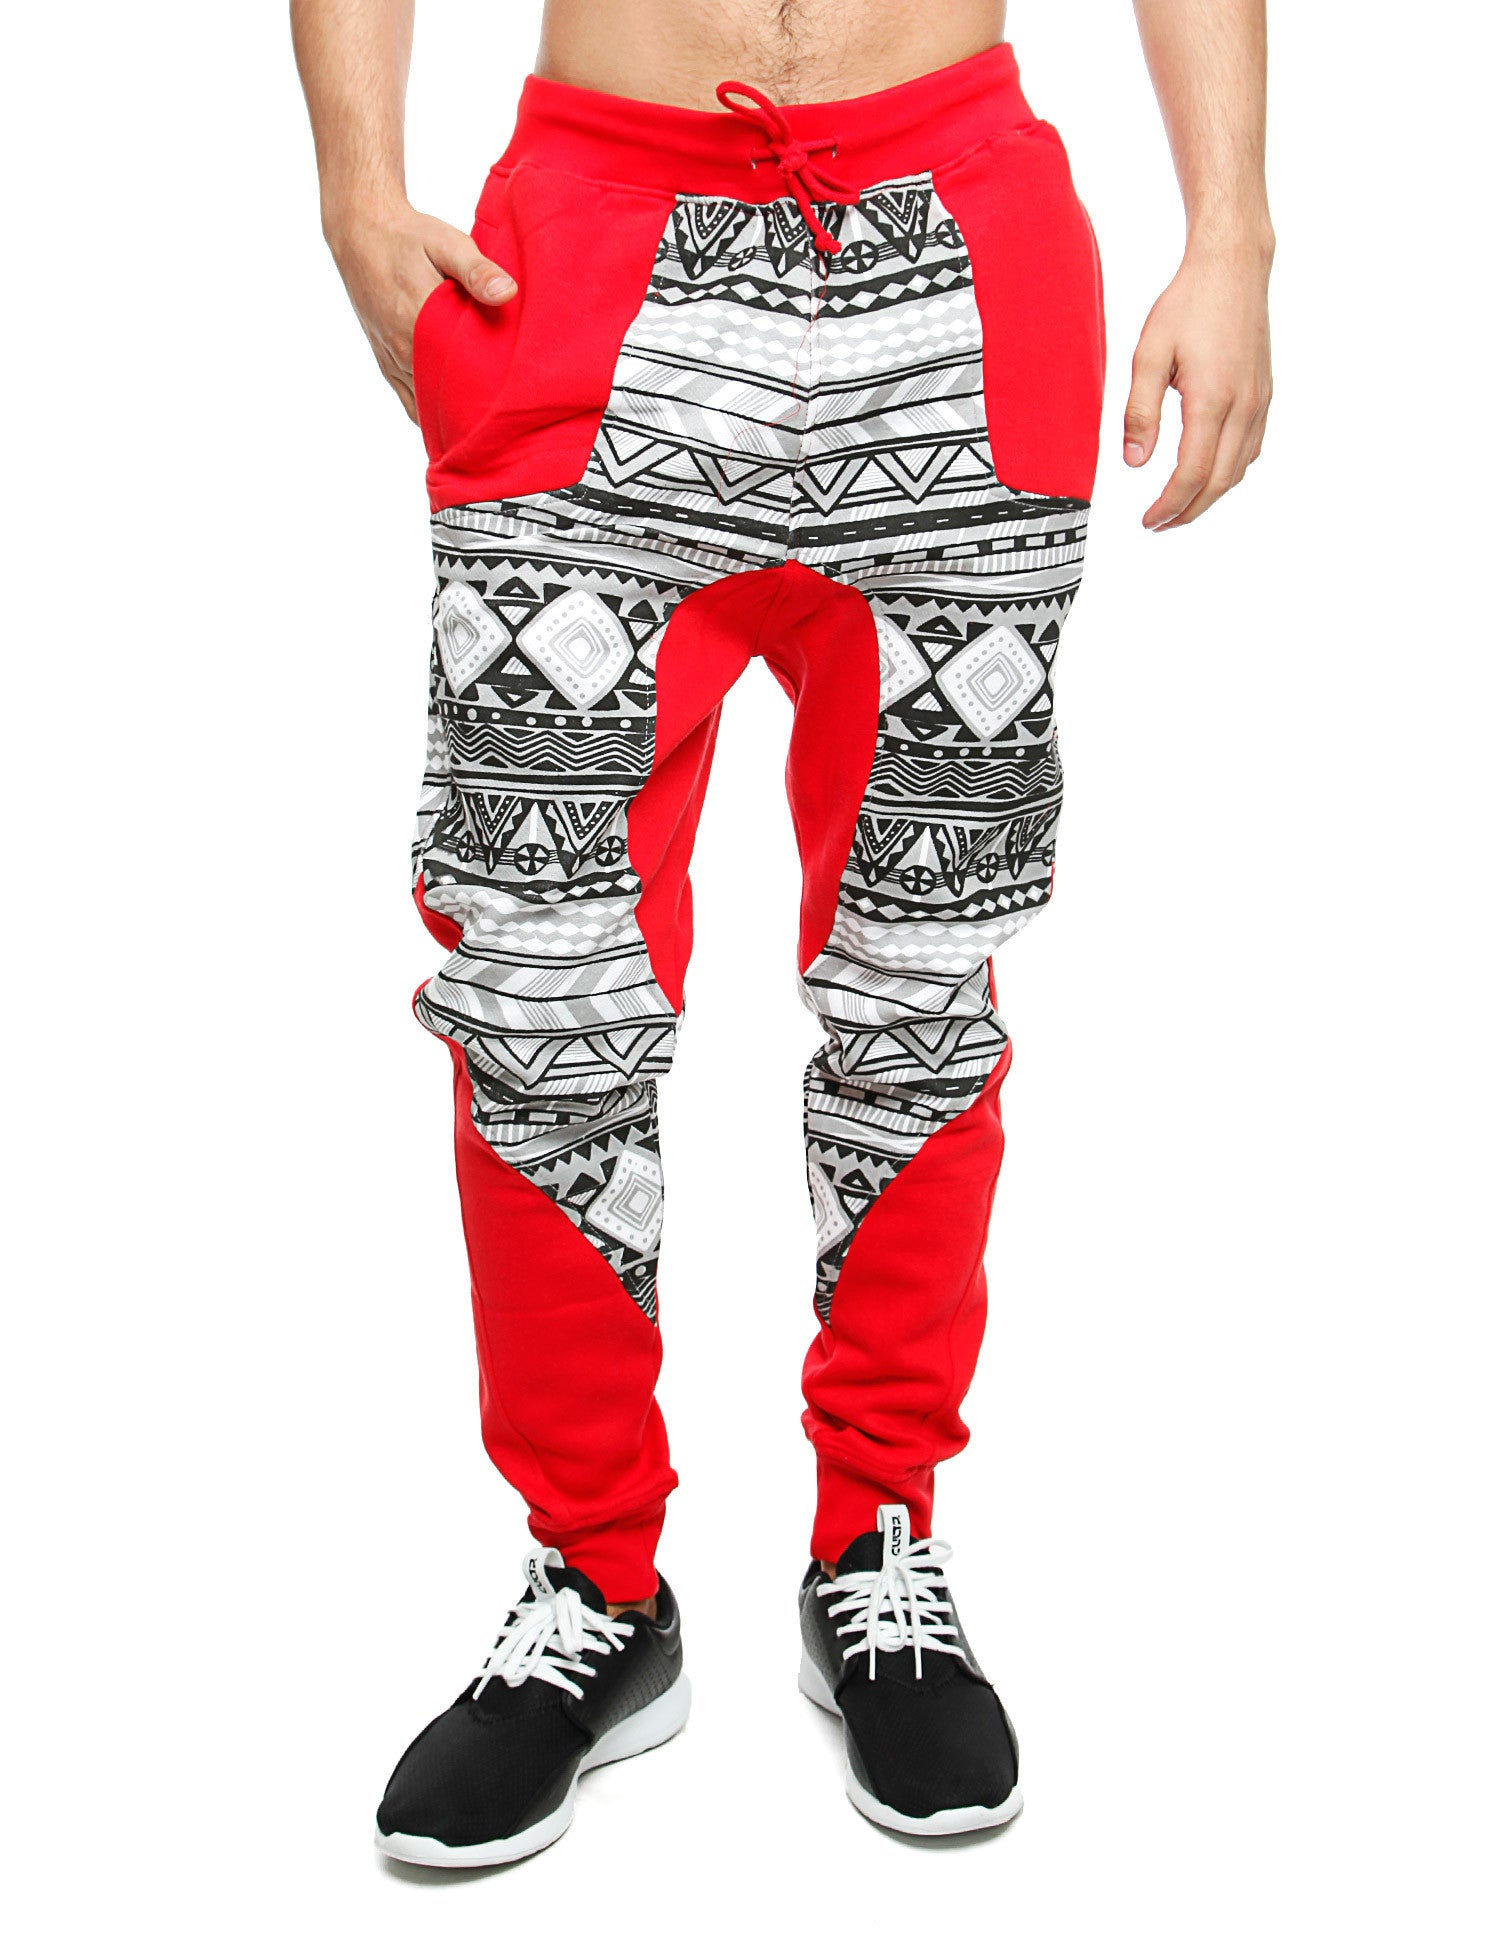 Imperious ´Aztec´ Sweatpant FP29 Red